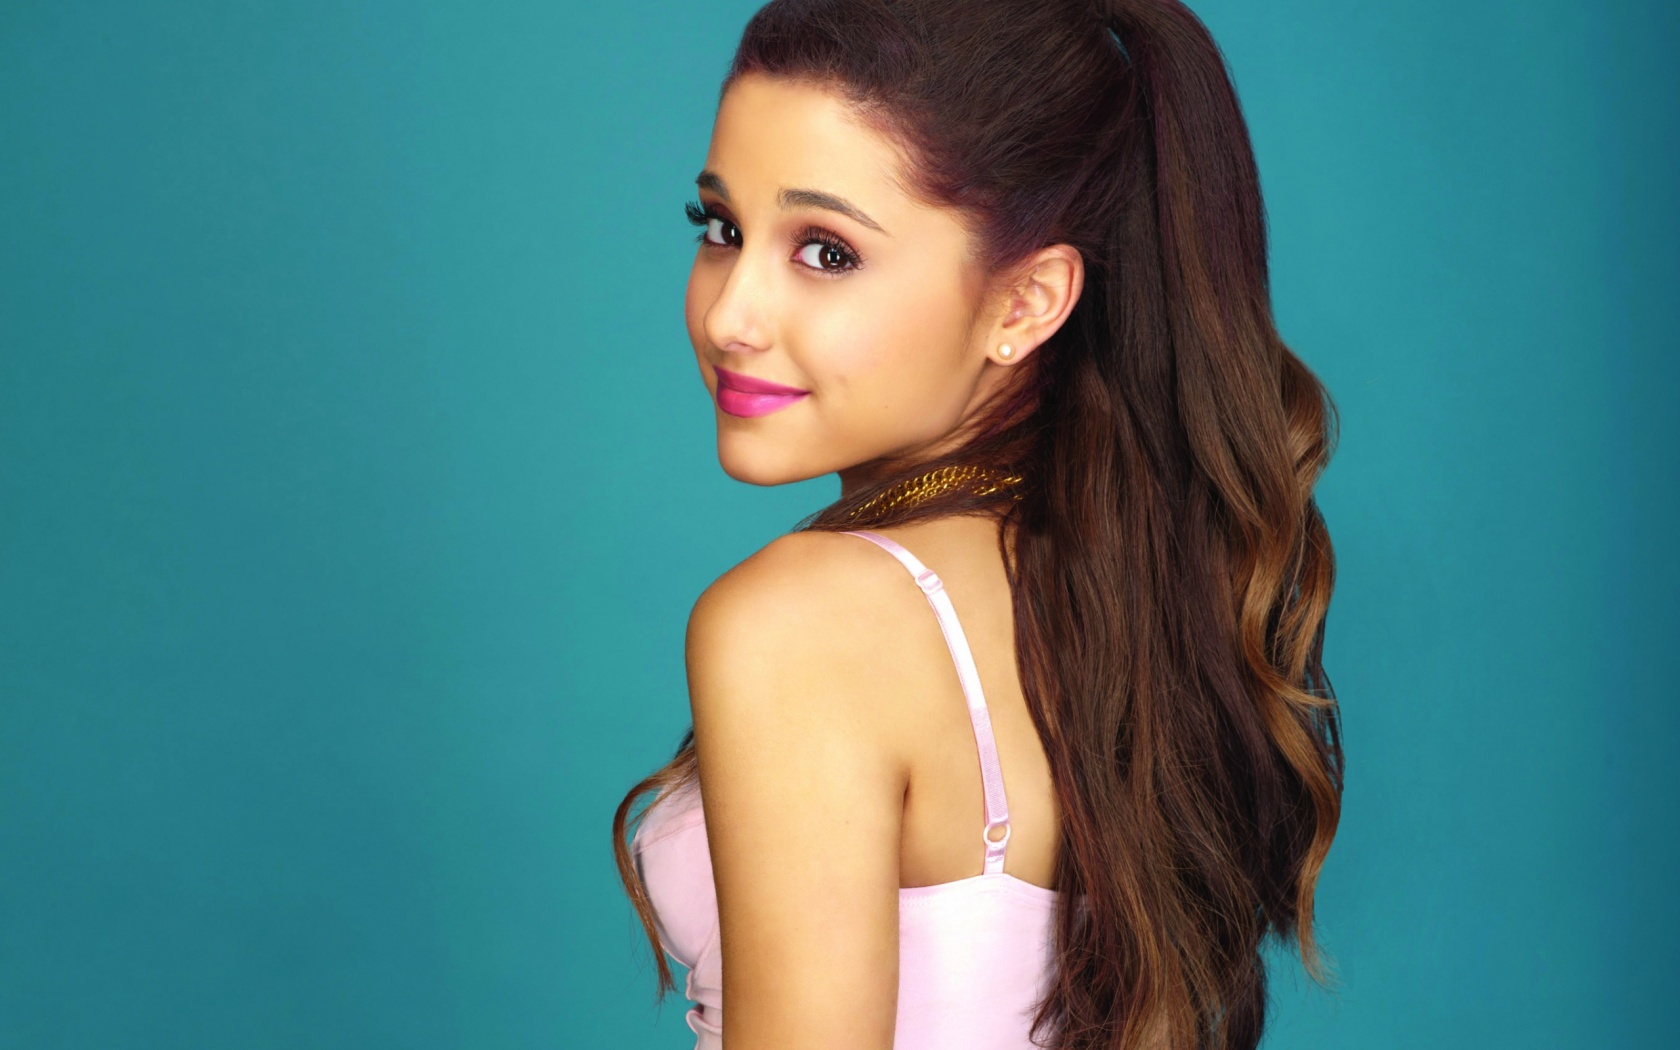 Are ariana grande and jai brooks still dating august 2013 3